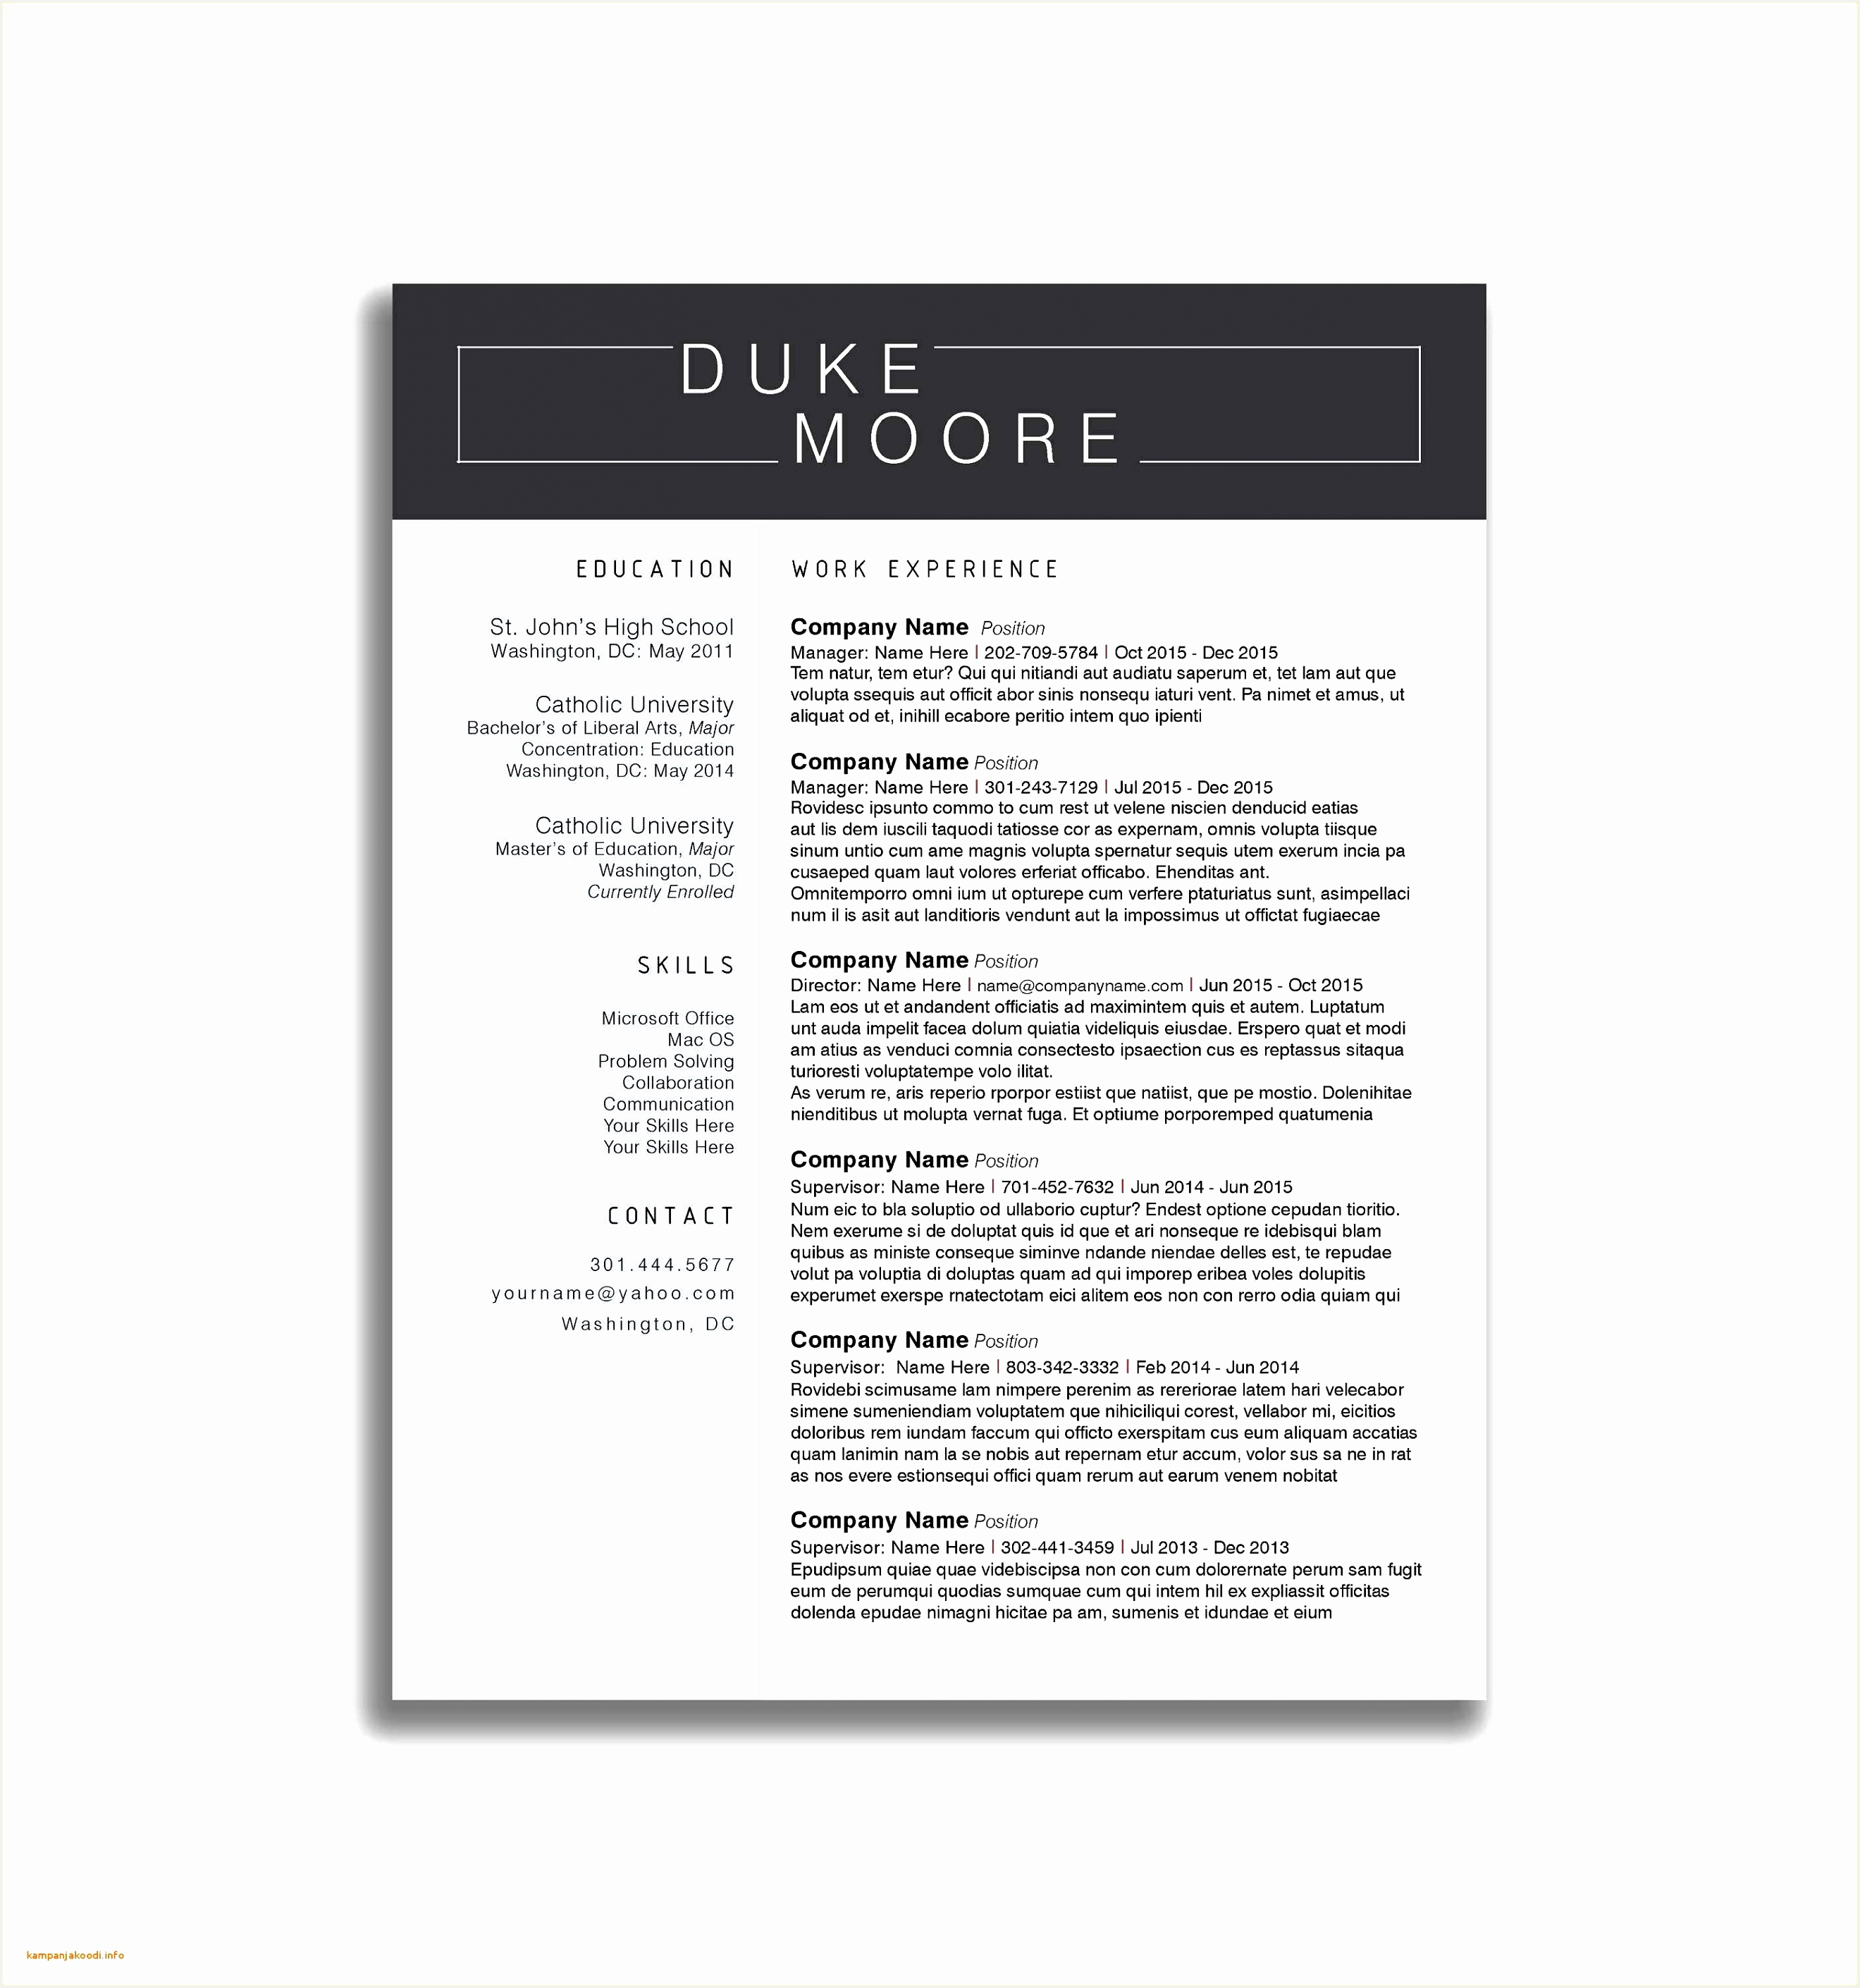 Sample Resume for Phlebotomist J3drg Fresh Resume Sample for Phlebotomist 42 Fresh Phlebotomy Resume Sample Of Sample Resume for Phlebotomist Ytjlr Elegant Sample Resume Letter Pdf Valid Fax Cover Letter Pdf format